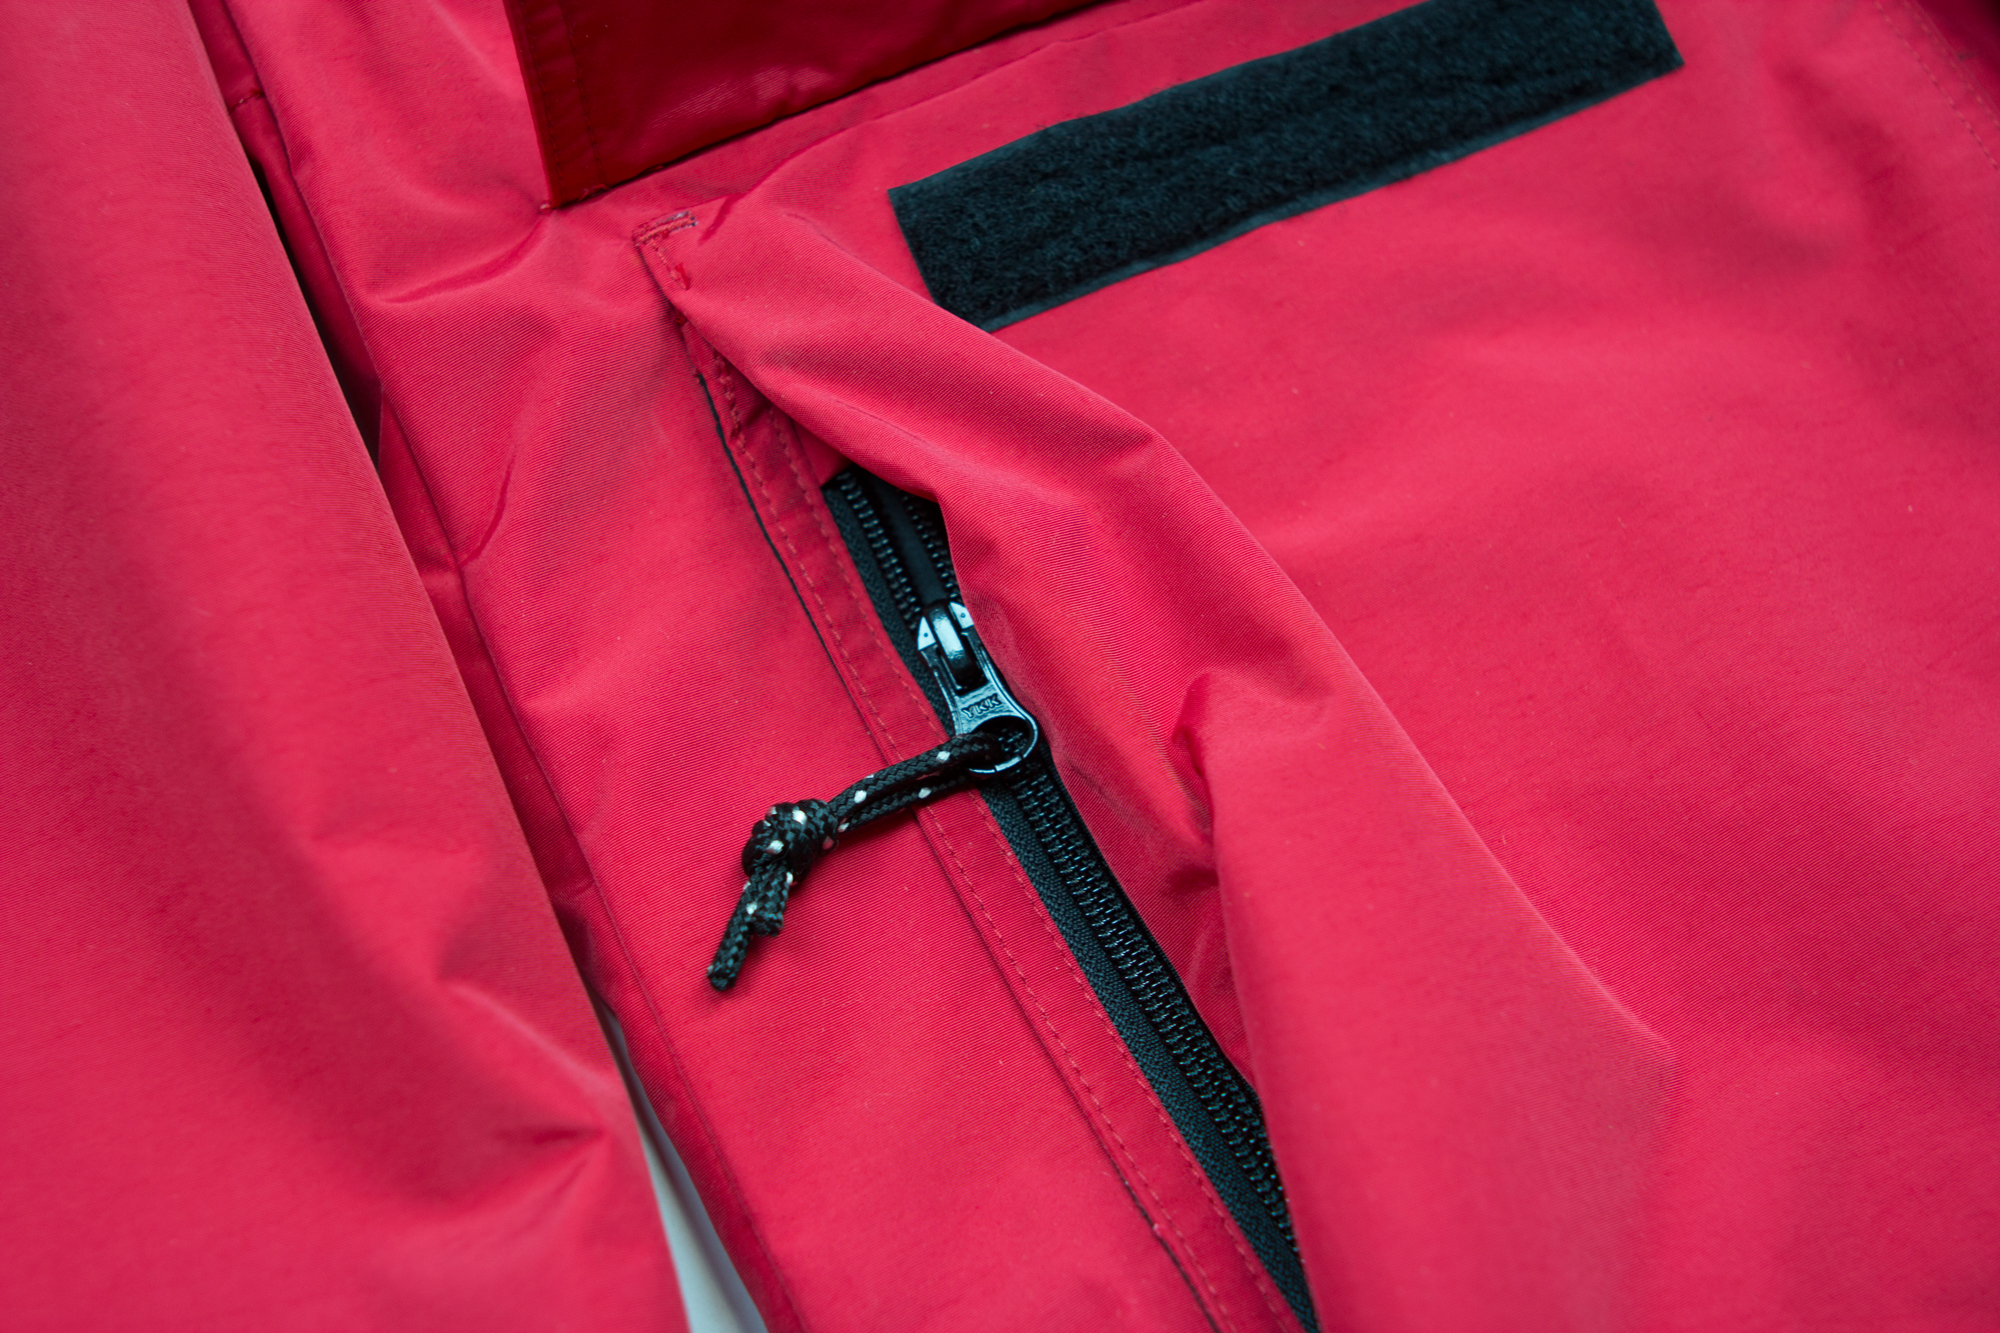 """ROOMY 2-WAY HANDWARMER POCKETS WITH ZIP, AND VELCRO CLOSURE. WE USE VELCRO, NOT CHEAP """"HOOK AND LOOP"""" IMITATIONS."""